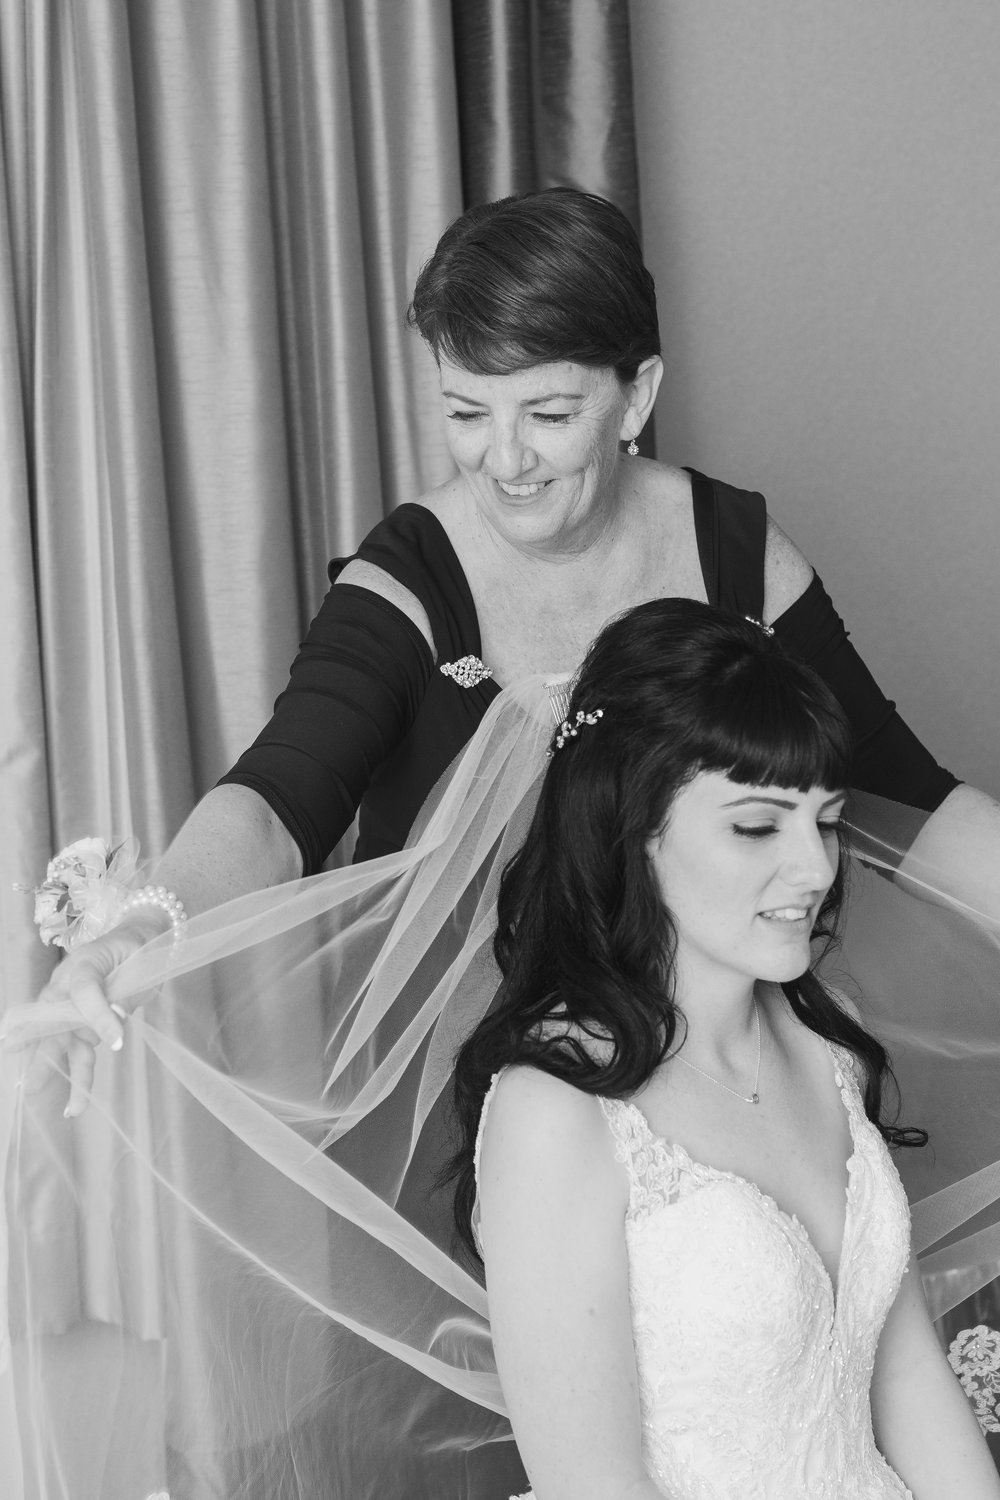 Photo of mother fixing veil of bride during getting ready.jpg